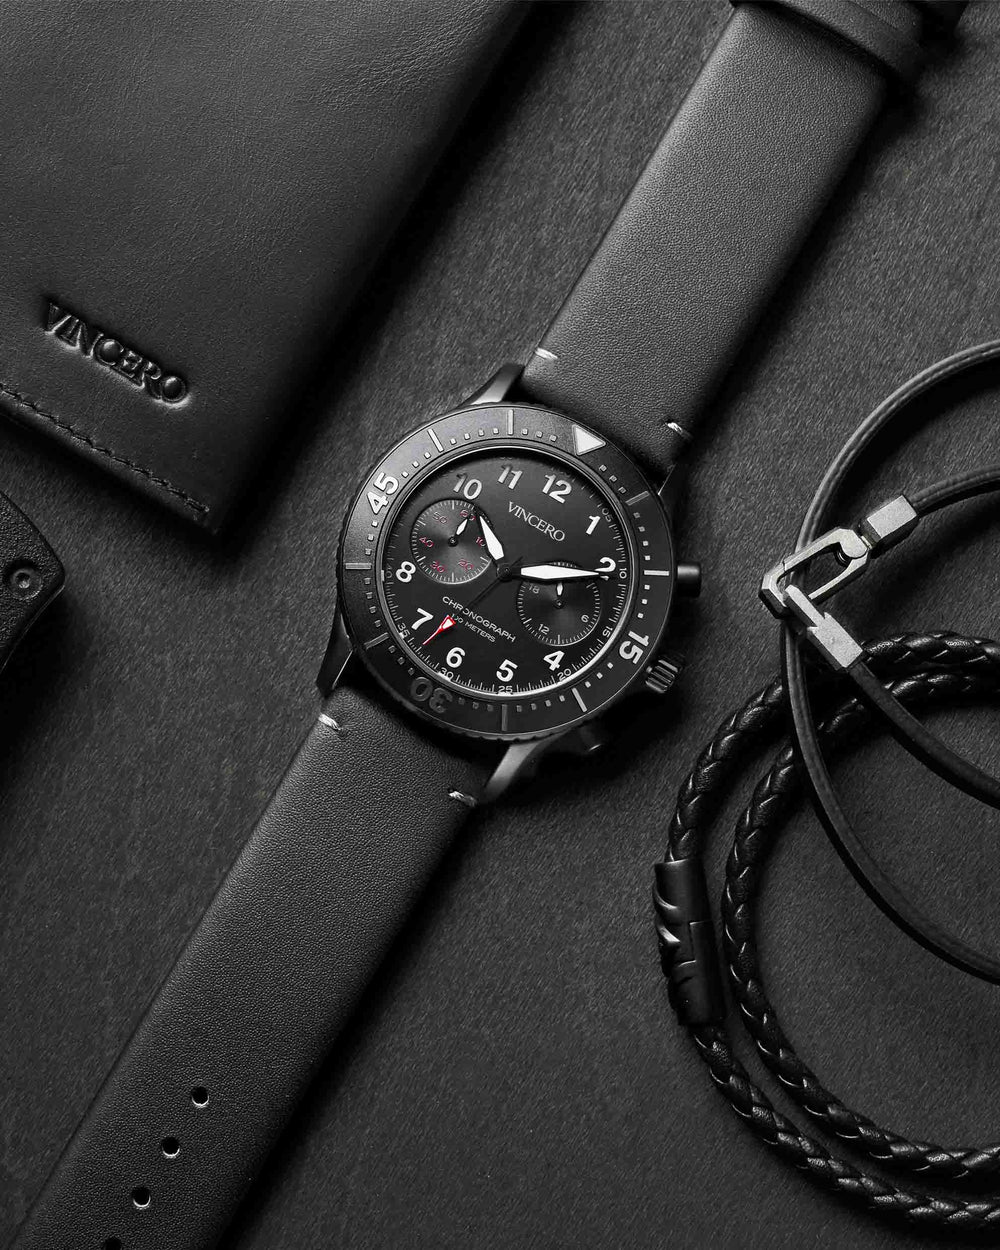 Outrider Black Italian Leather Strap Black Watch Face Matte Black Case Clasp Grey Accents